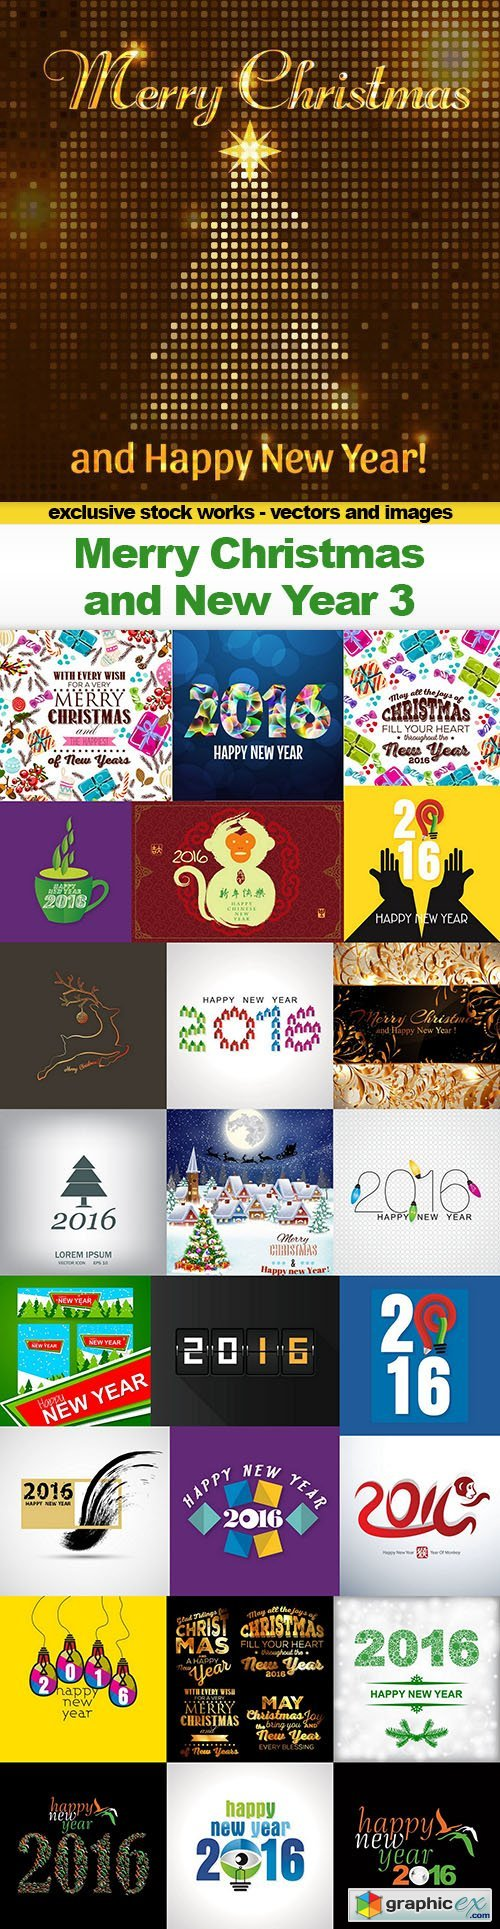 Vector free download vector stock image photoshop icon merry christmas and new year 3 25x eps gumiabroncs Images